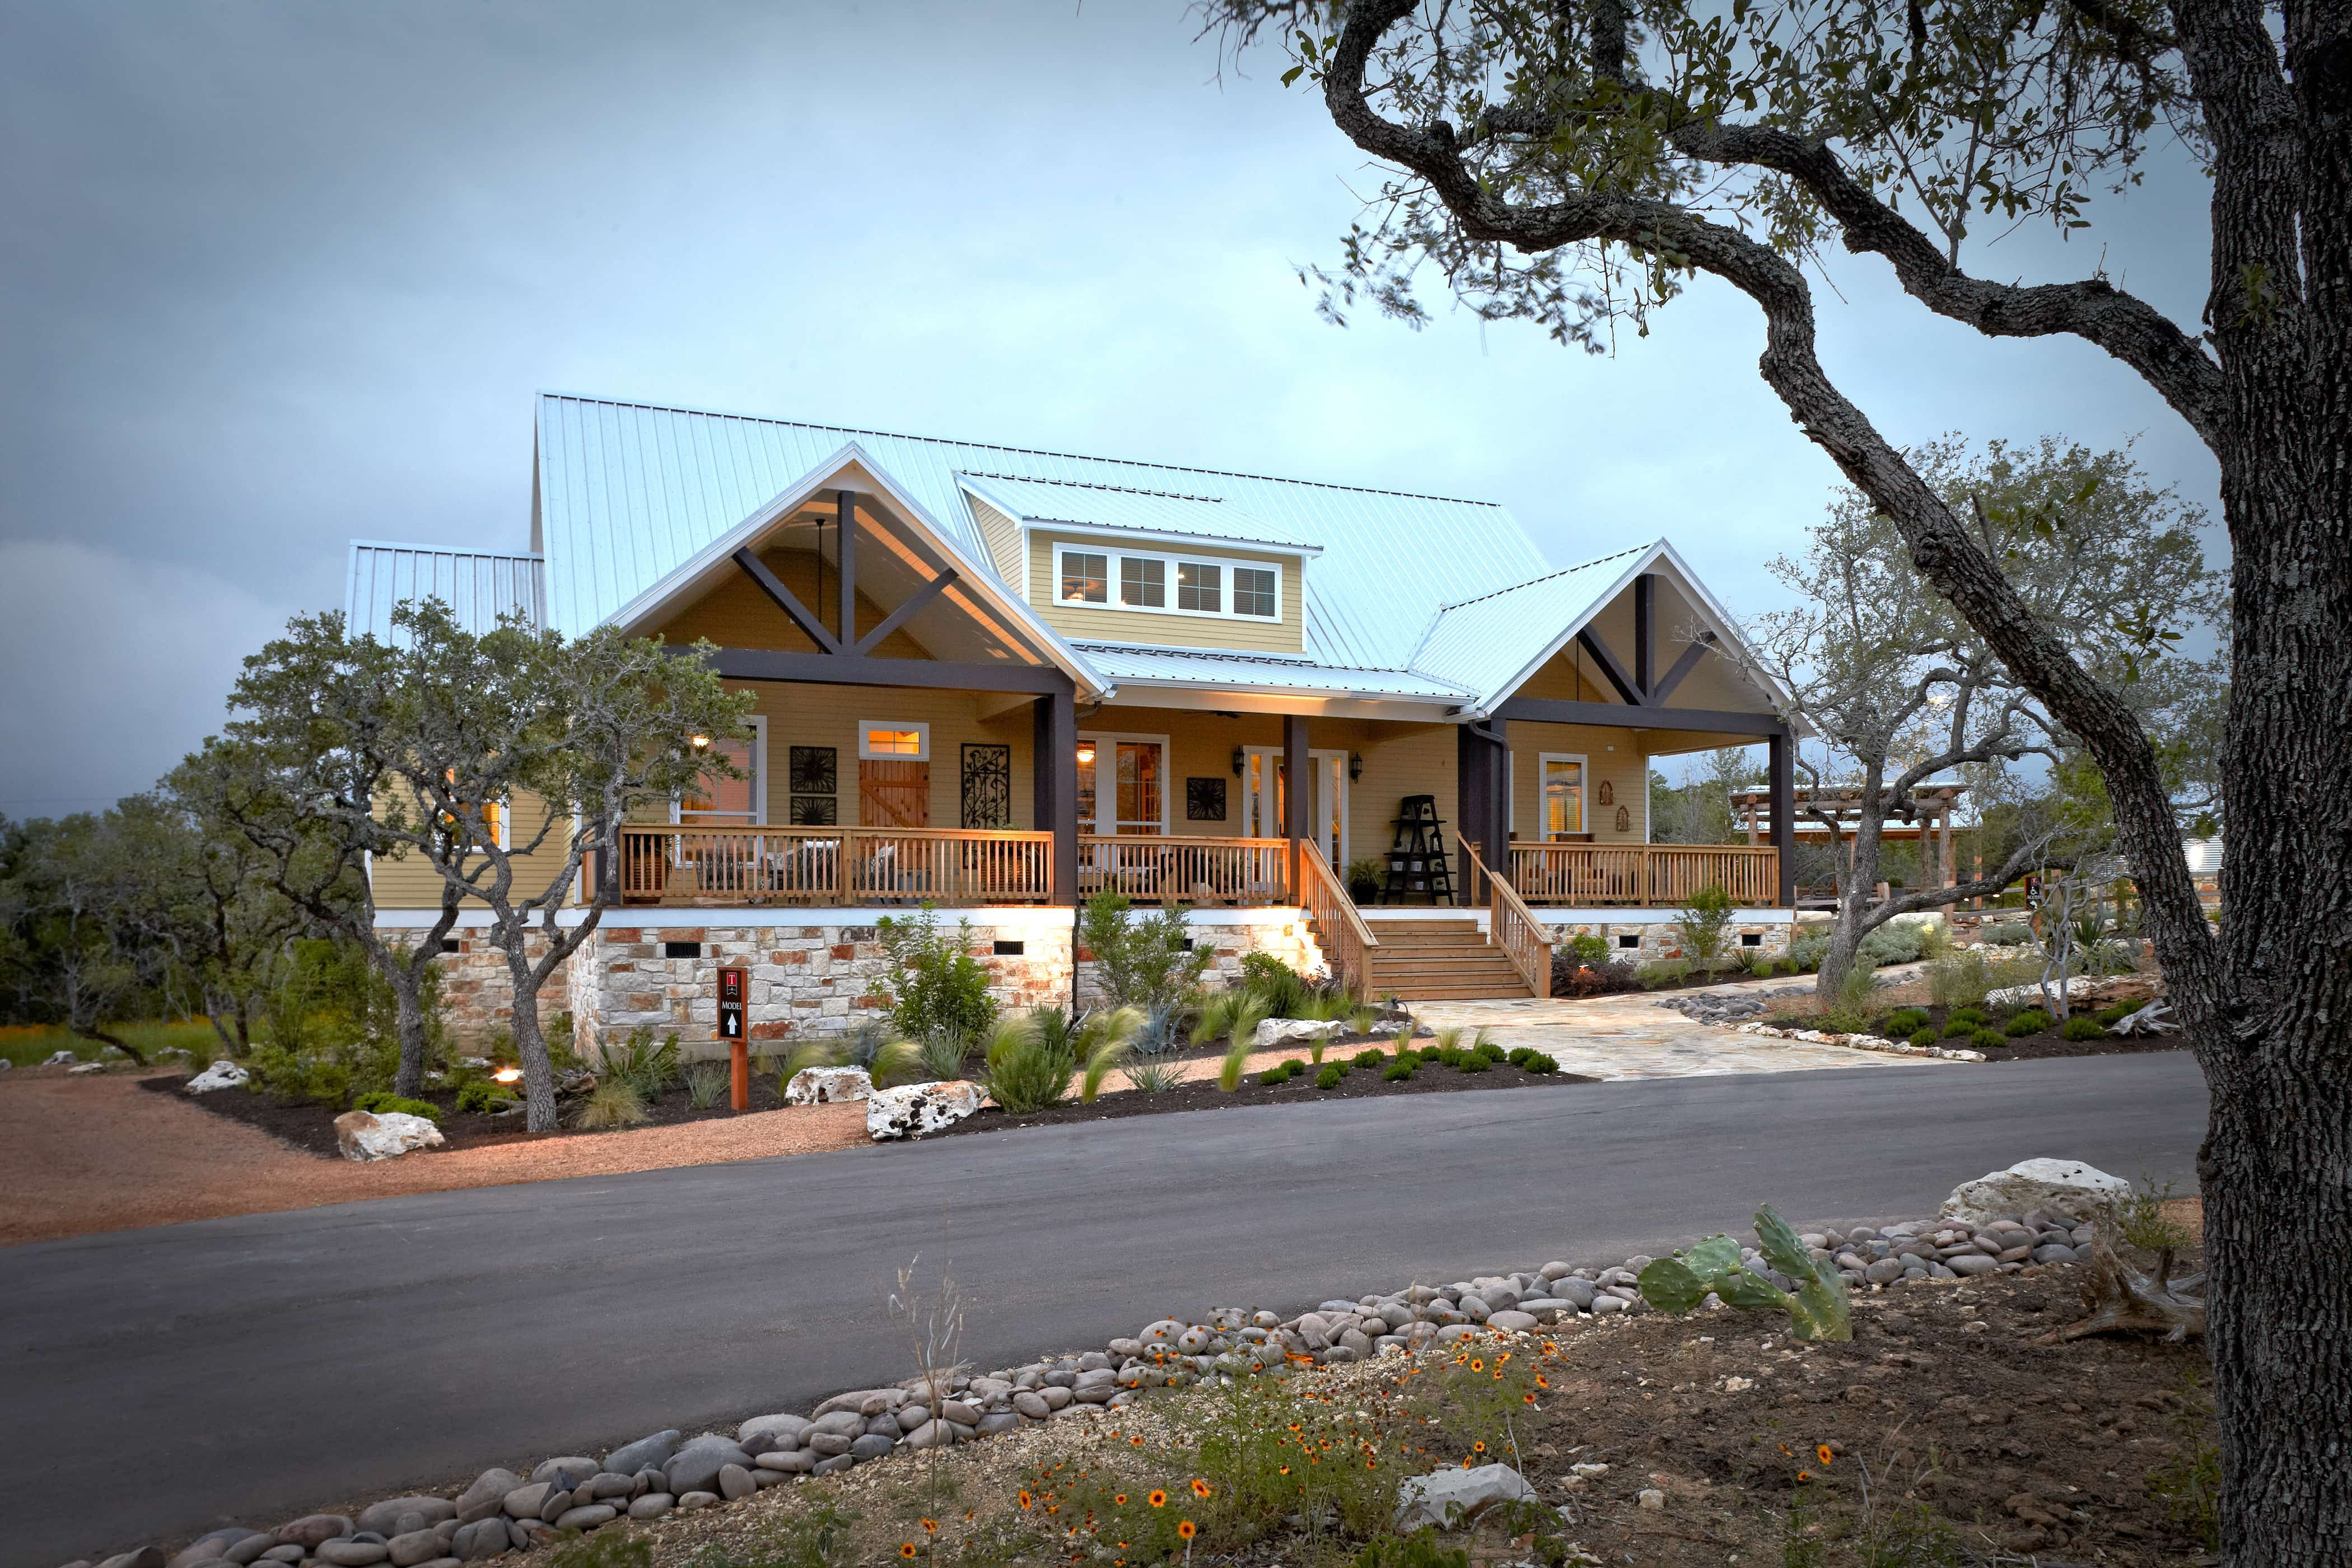 drobek wimberley vacation cabins rentals fredericksburg friendly pet texas info country hill